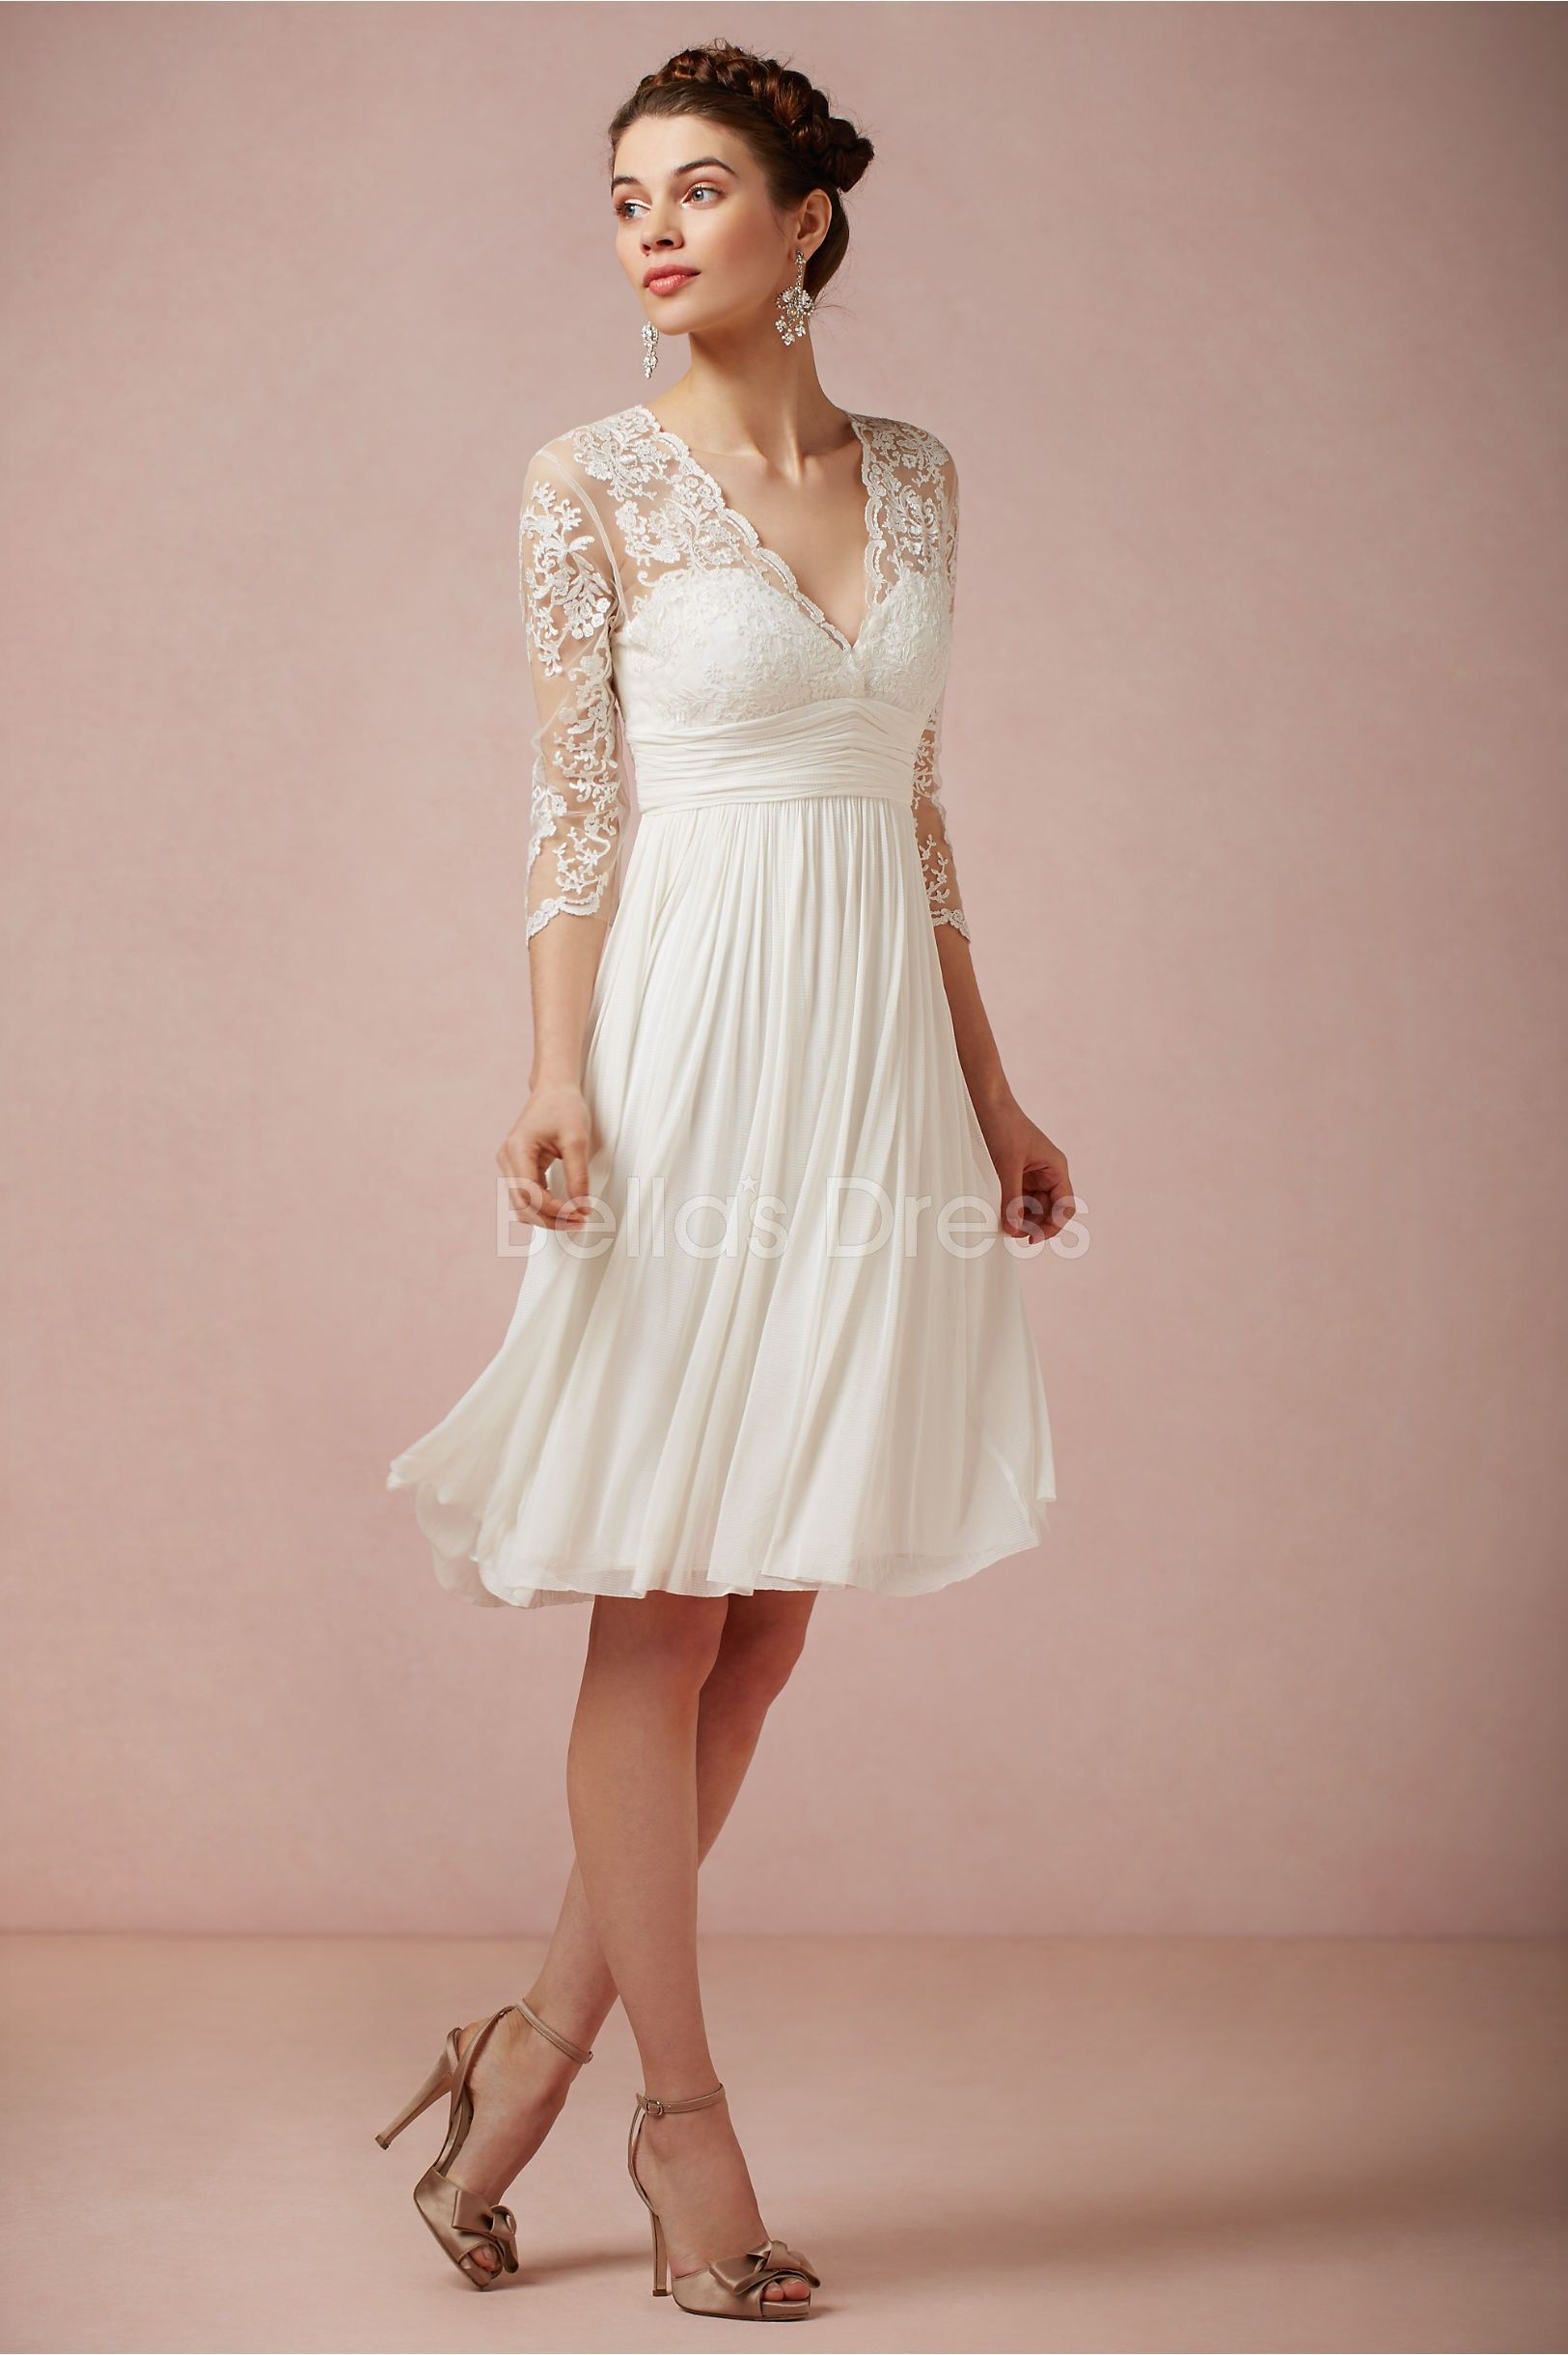 Cheap casual wedding dresses  knee length lace wedding dresses  Knee Length V Neck Sheath Column